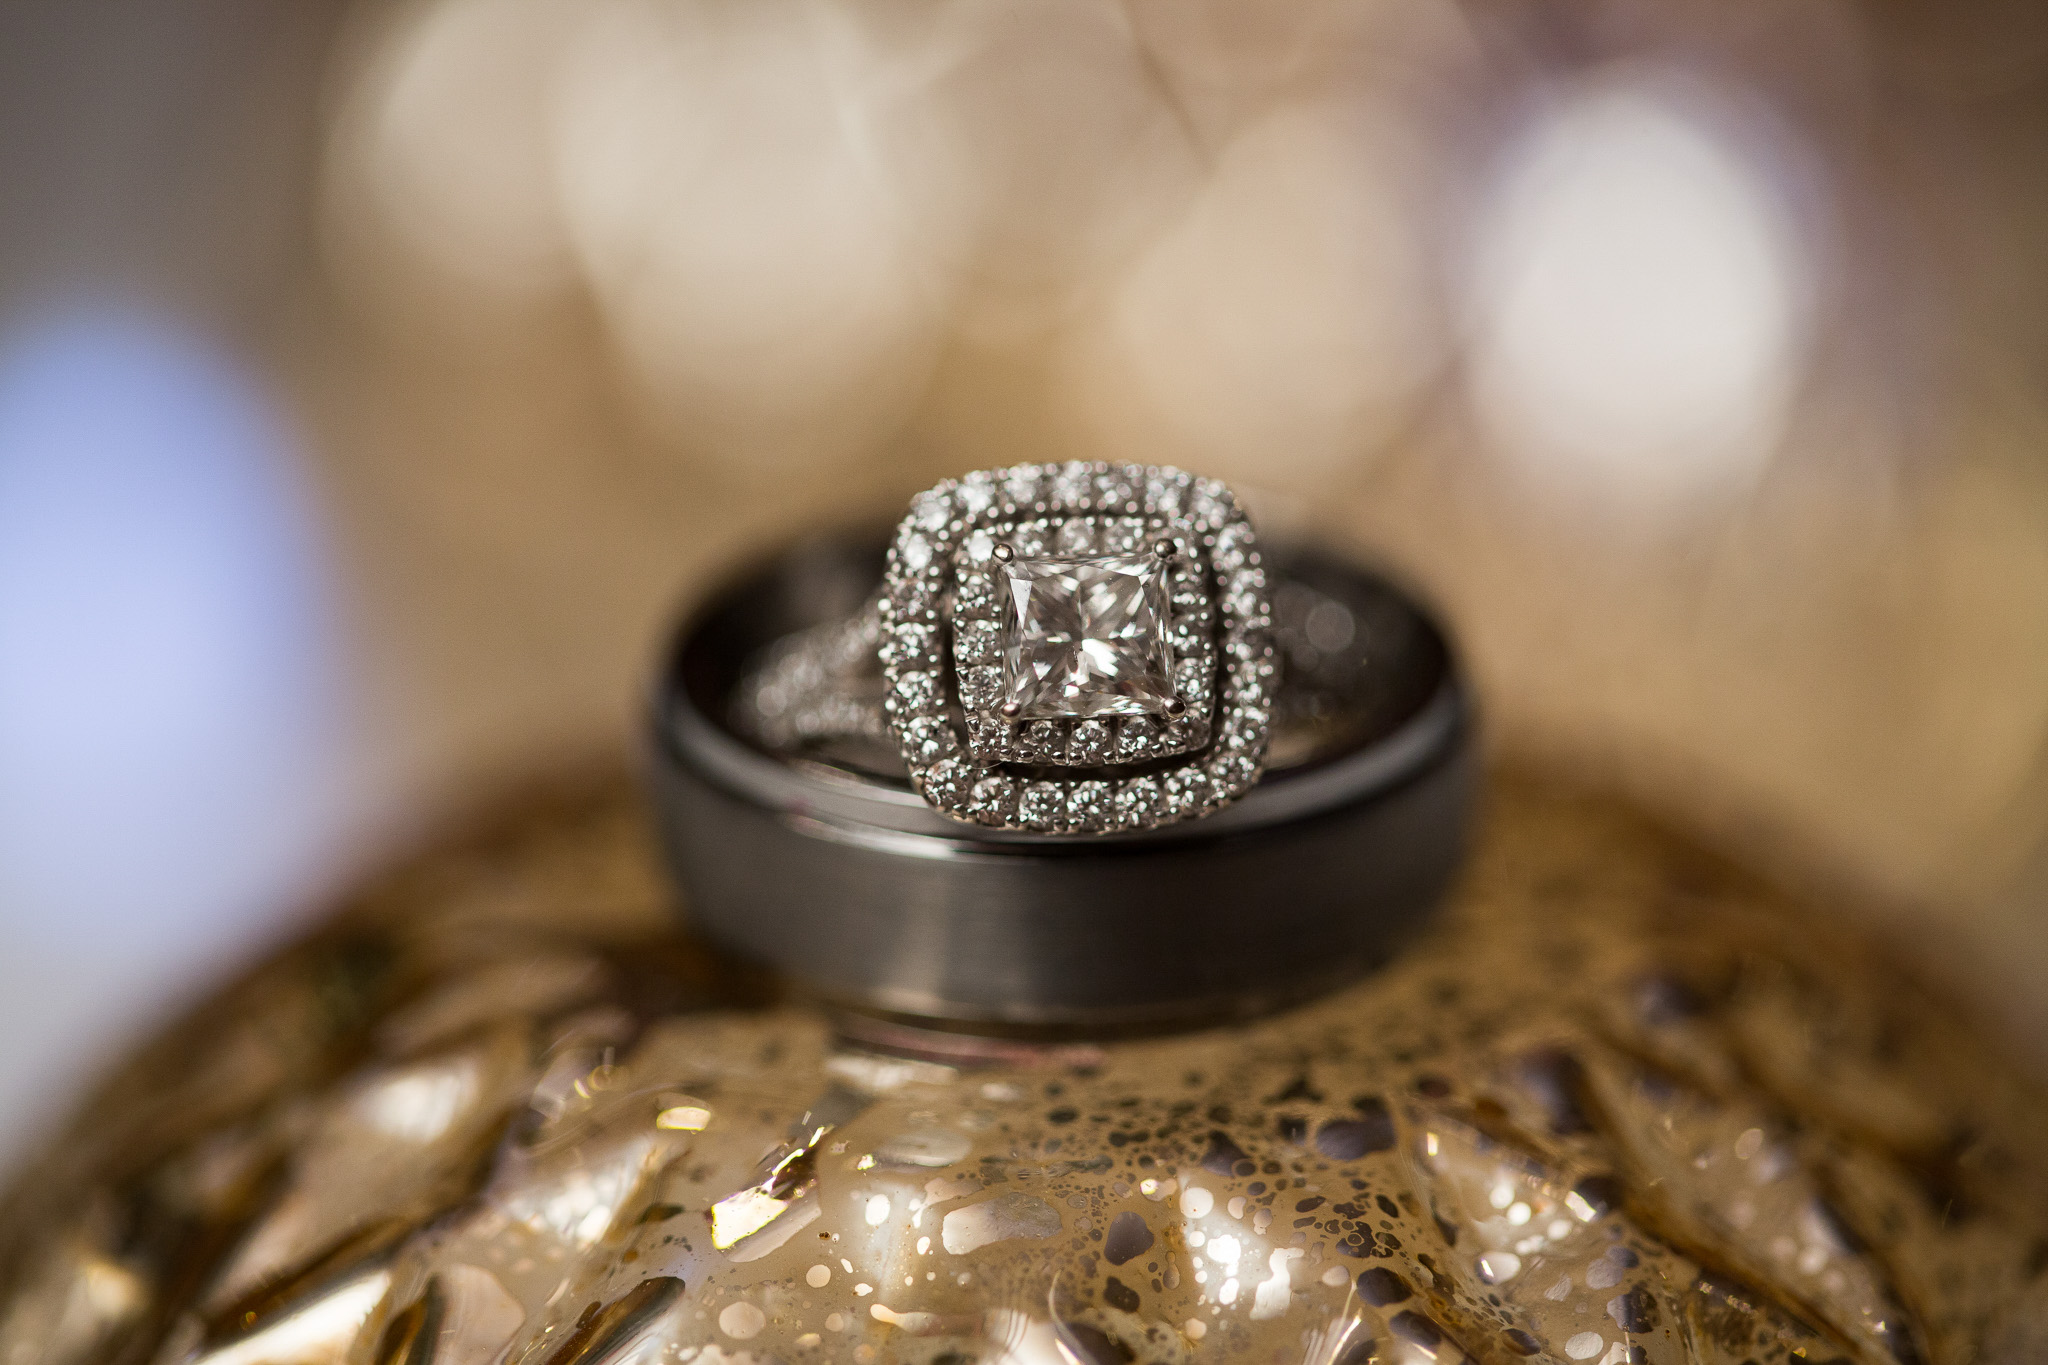 wedding photography class how to photograph macro ring details